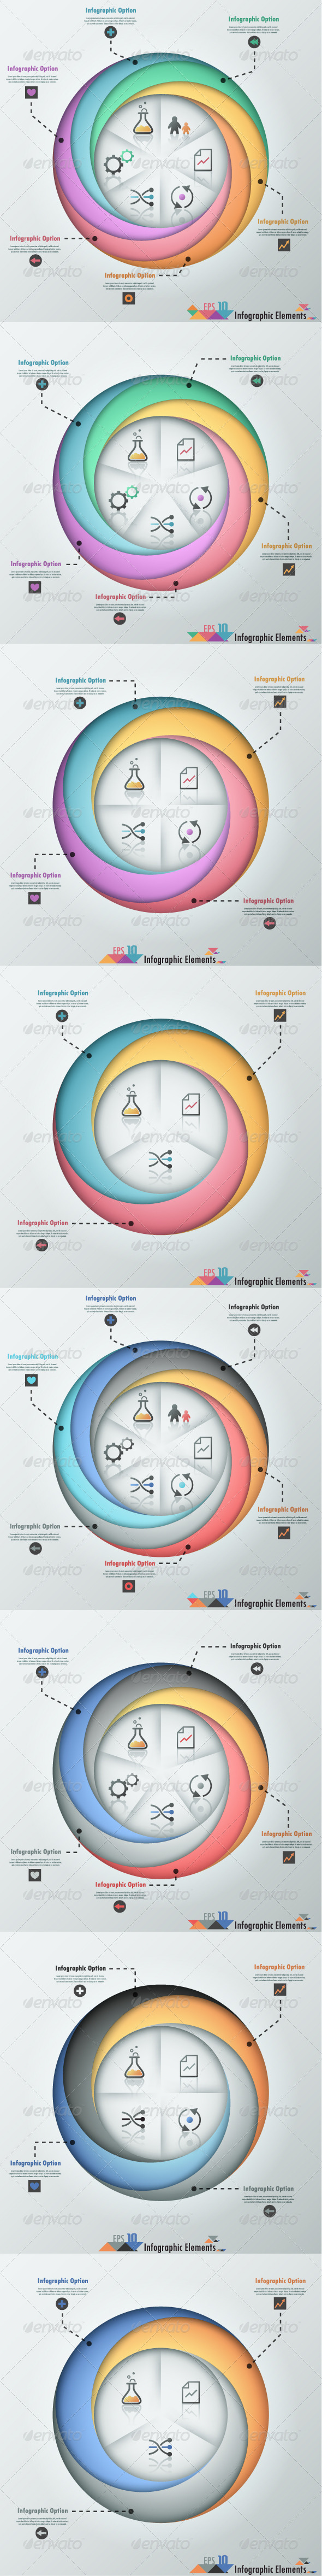 GraphicRiver Modern Infographic Options Banner 8 Versions 7517224